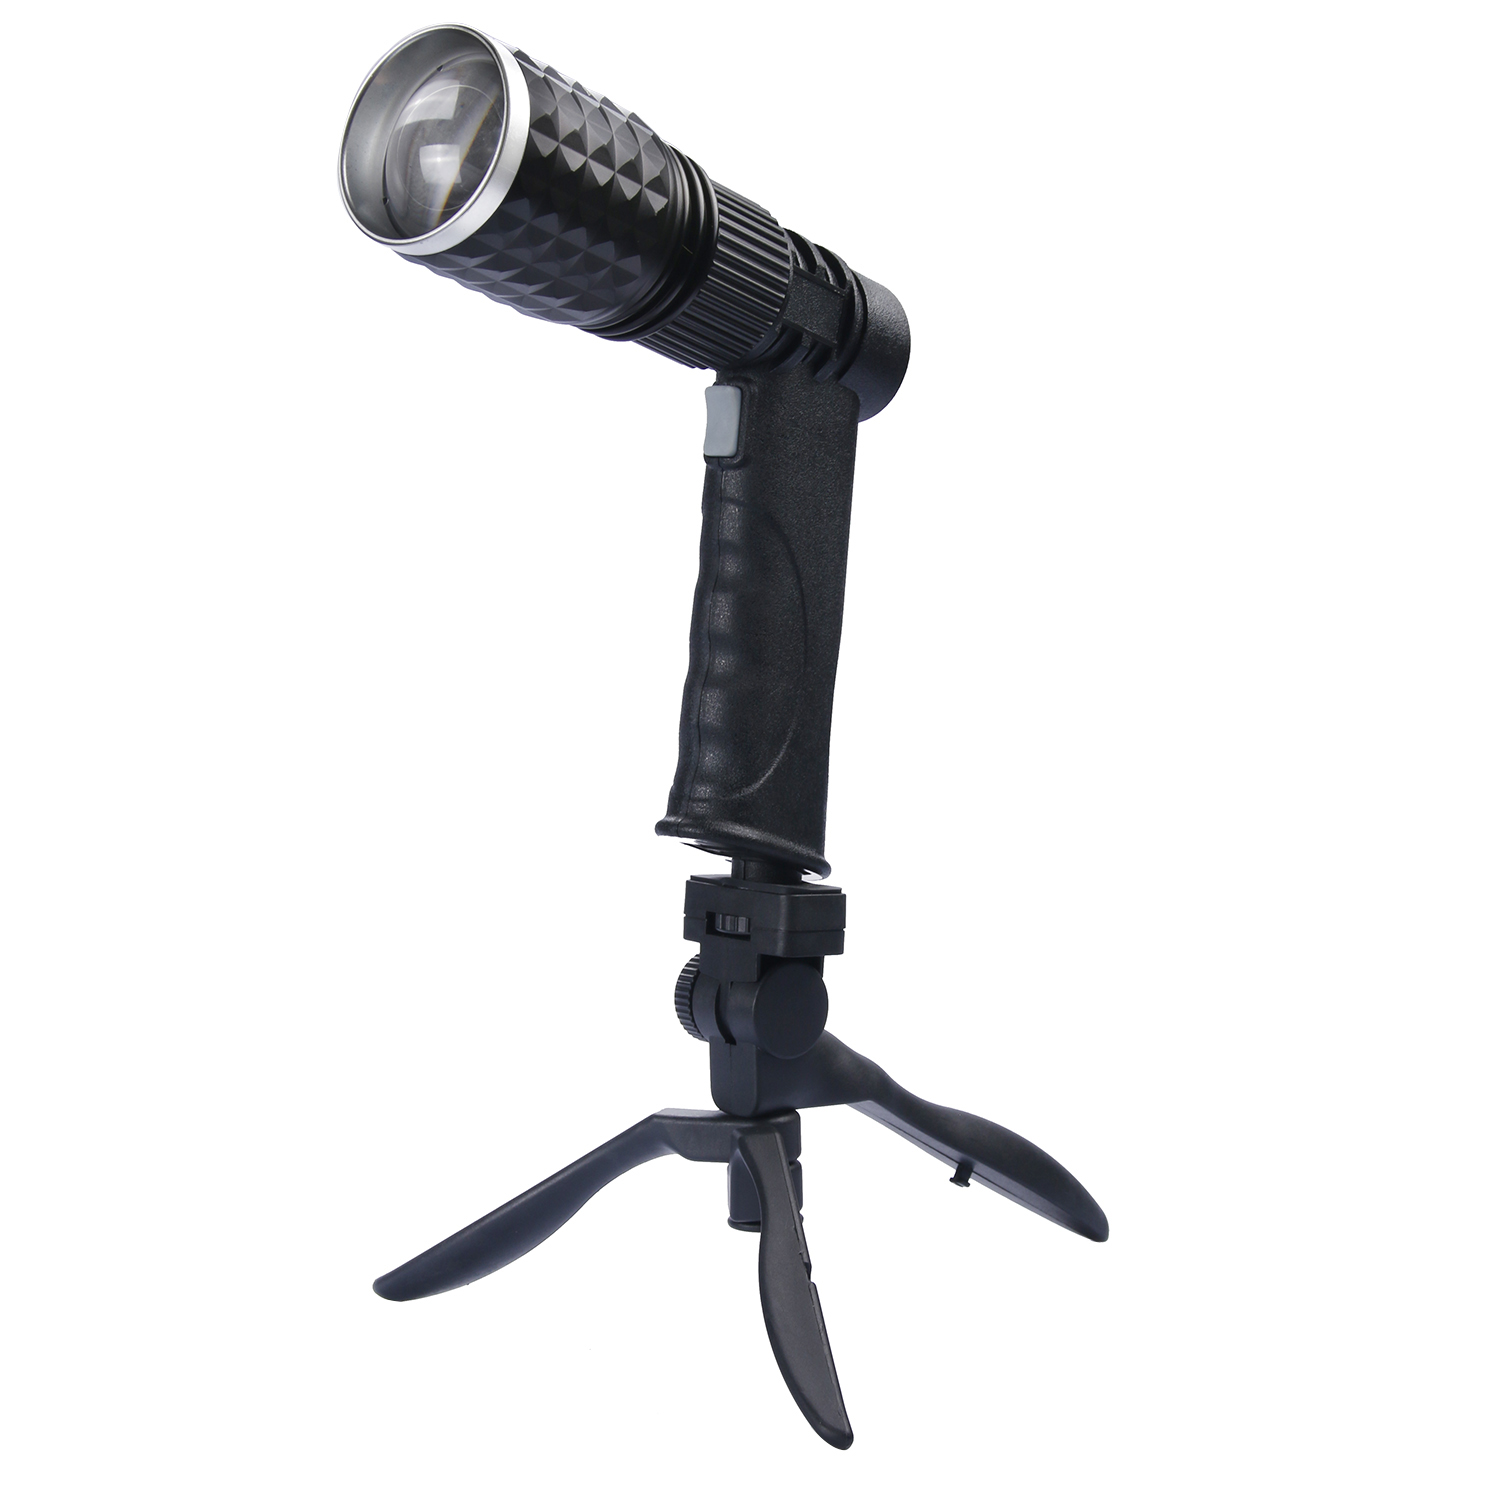 Super Bright New Zoomable XM-L T6 LED Flashlight Torch Light Stand Power Bank for your phone outdoor + USB Charger+ holder new bright ракетная установка на радиоуправлении new bright